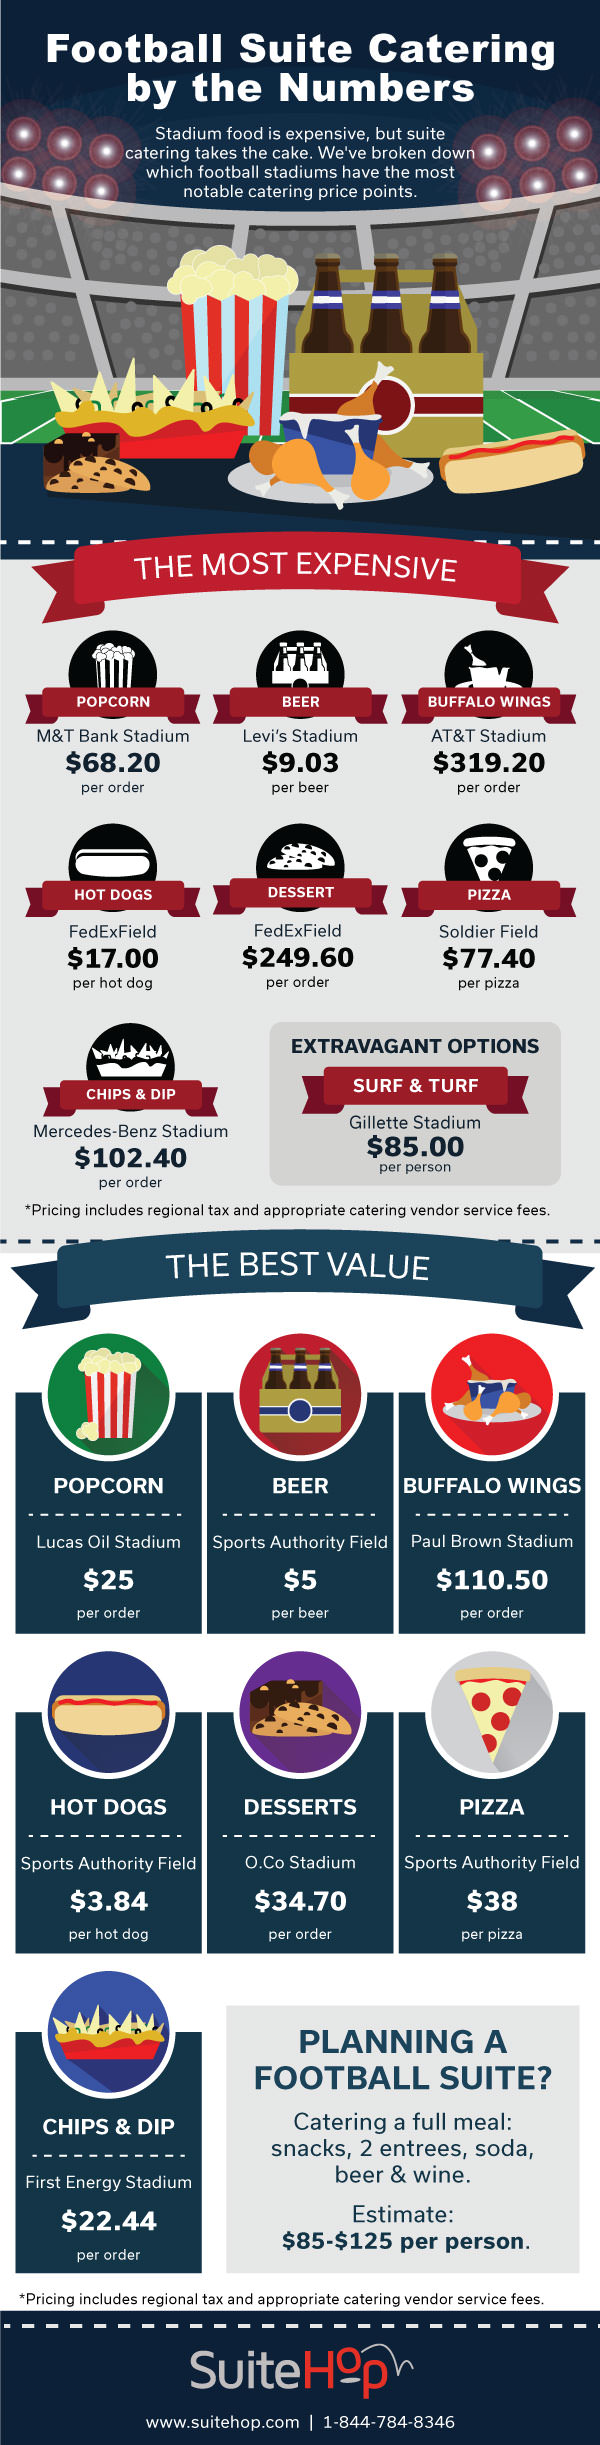 Understanding the costs of football suite catering